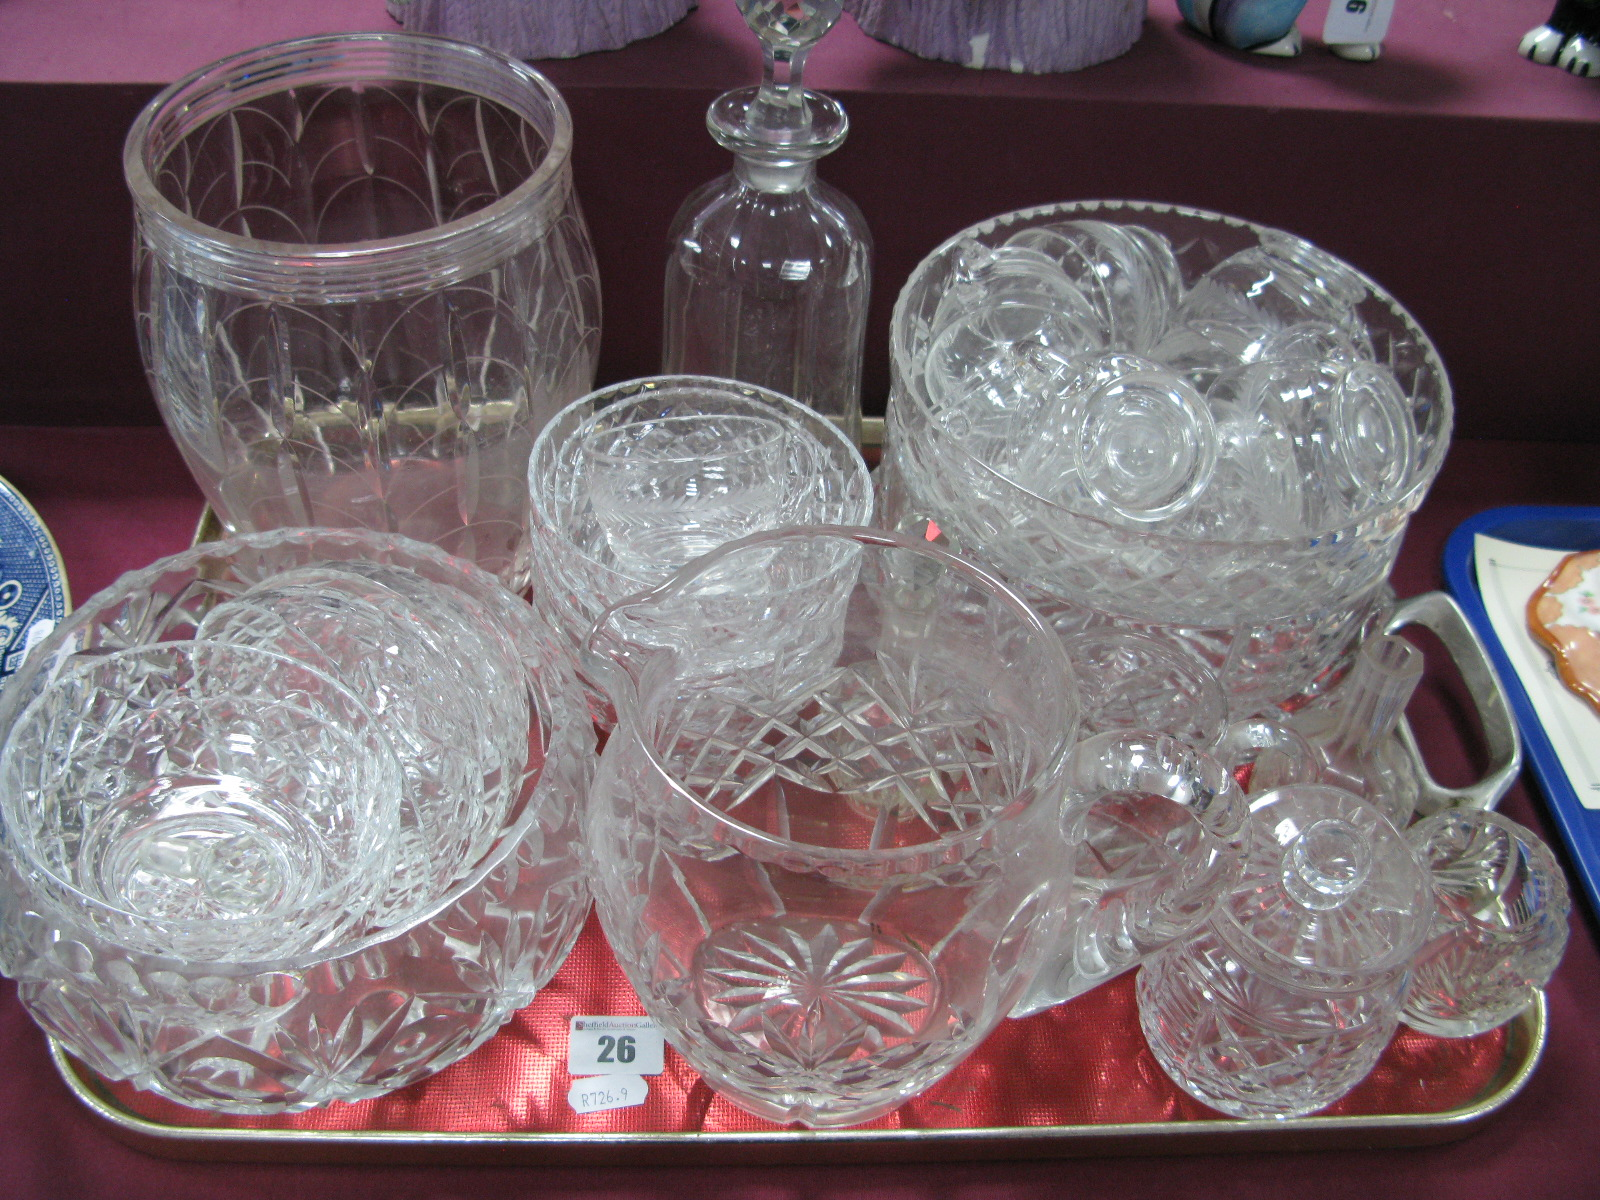 Lot 26 - Cut glass Vase, etched signature to base, cut glass fruit bowls, dishes, decanter, jug, punch cups